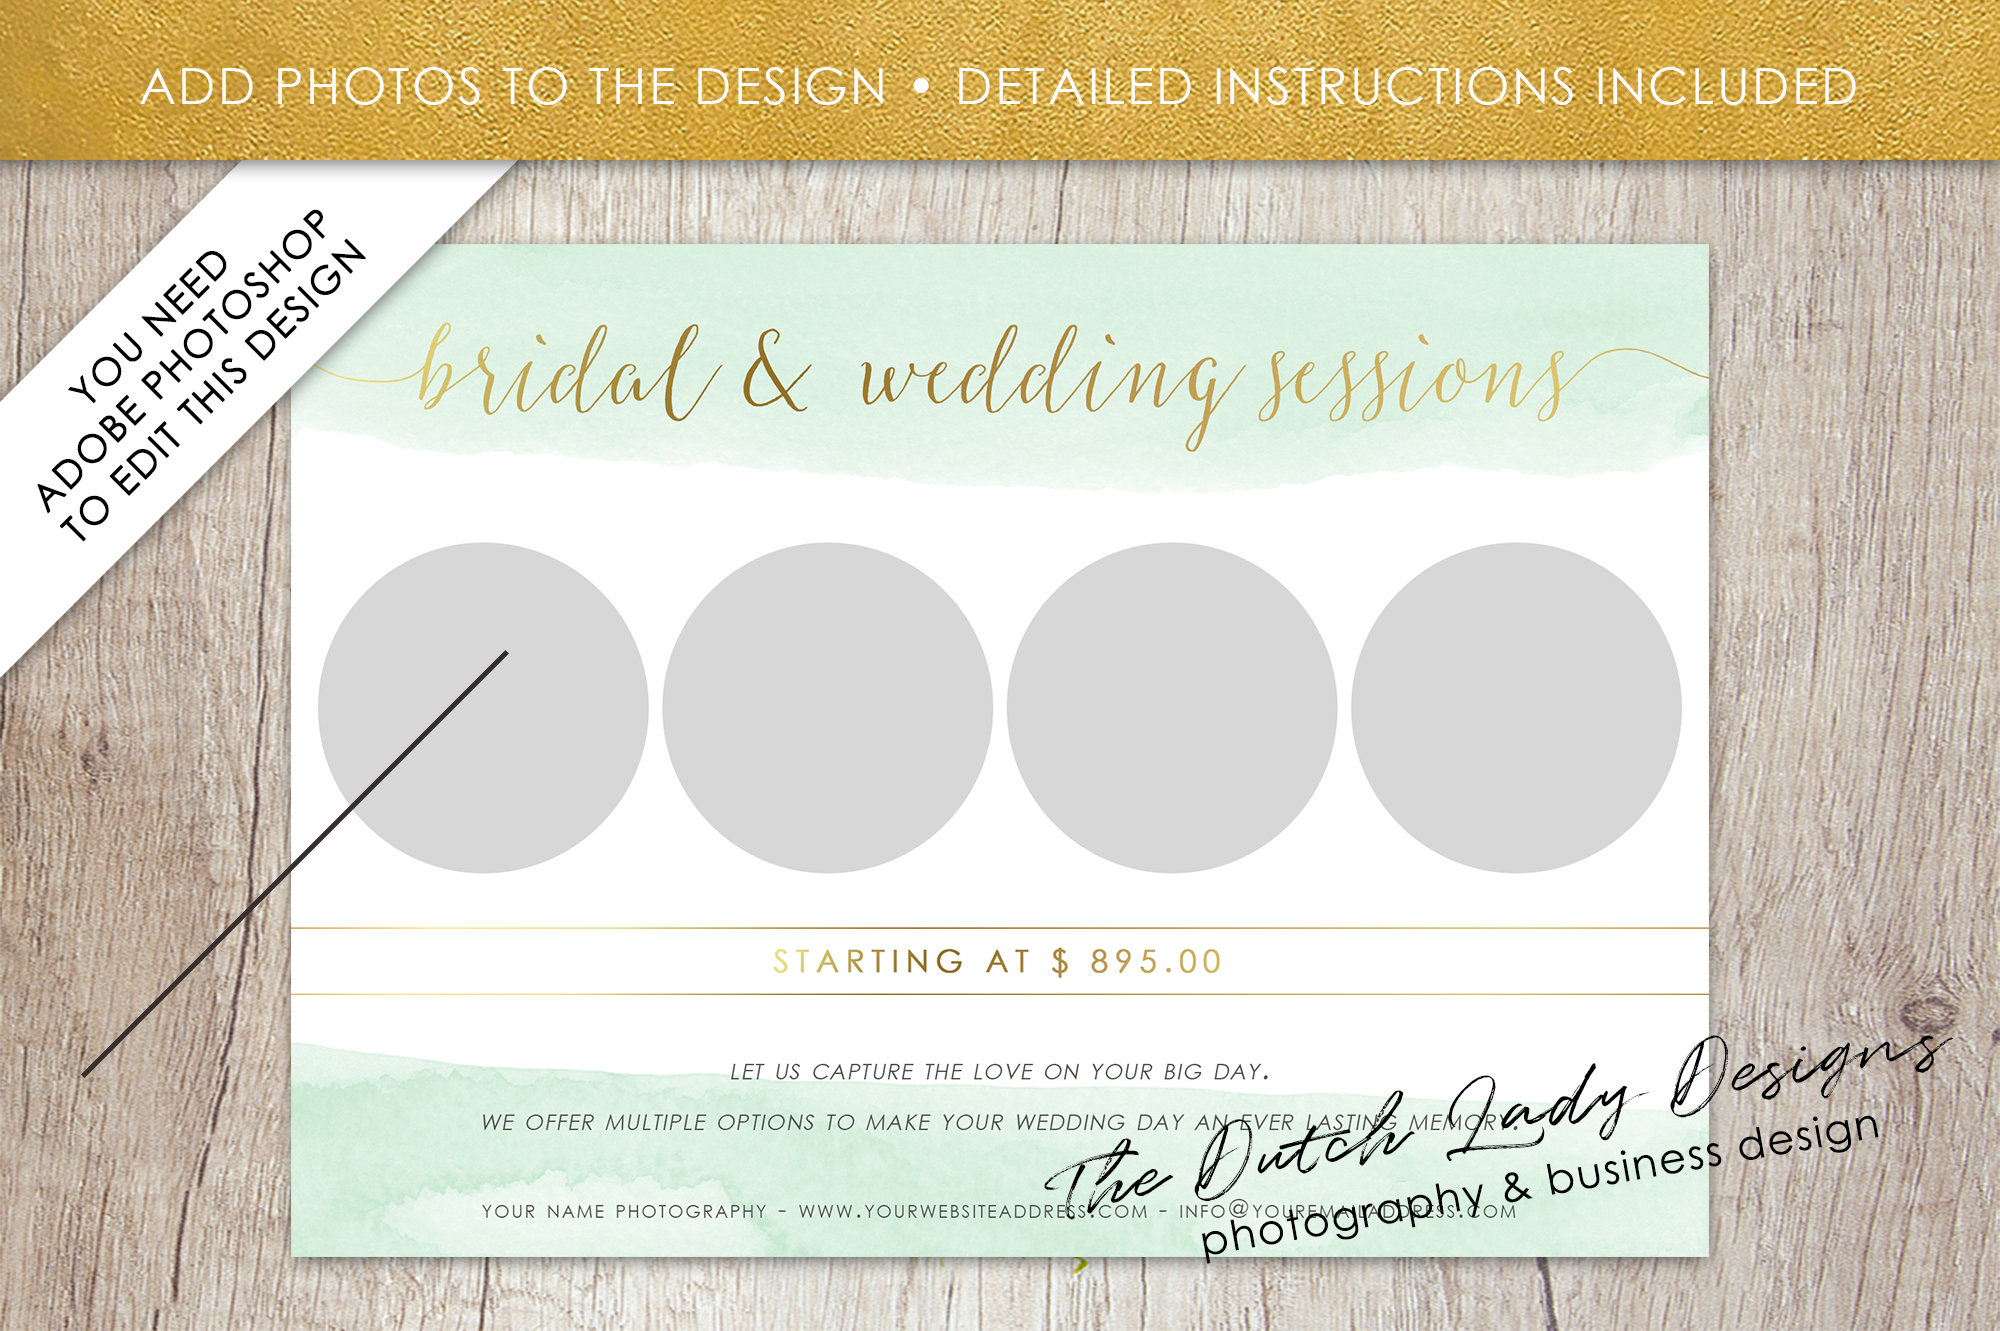 PSD Wedding Photo Session Card Template - Design #34 example image 2